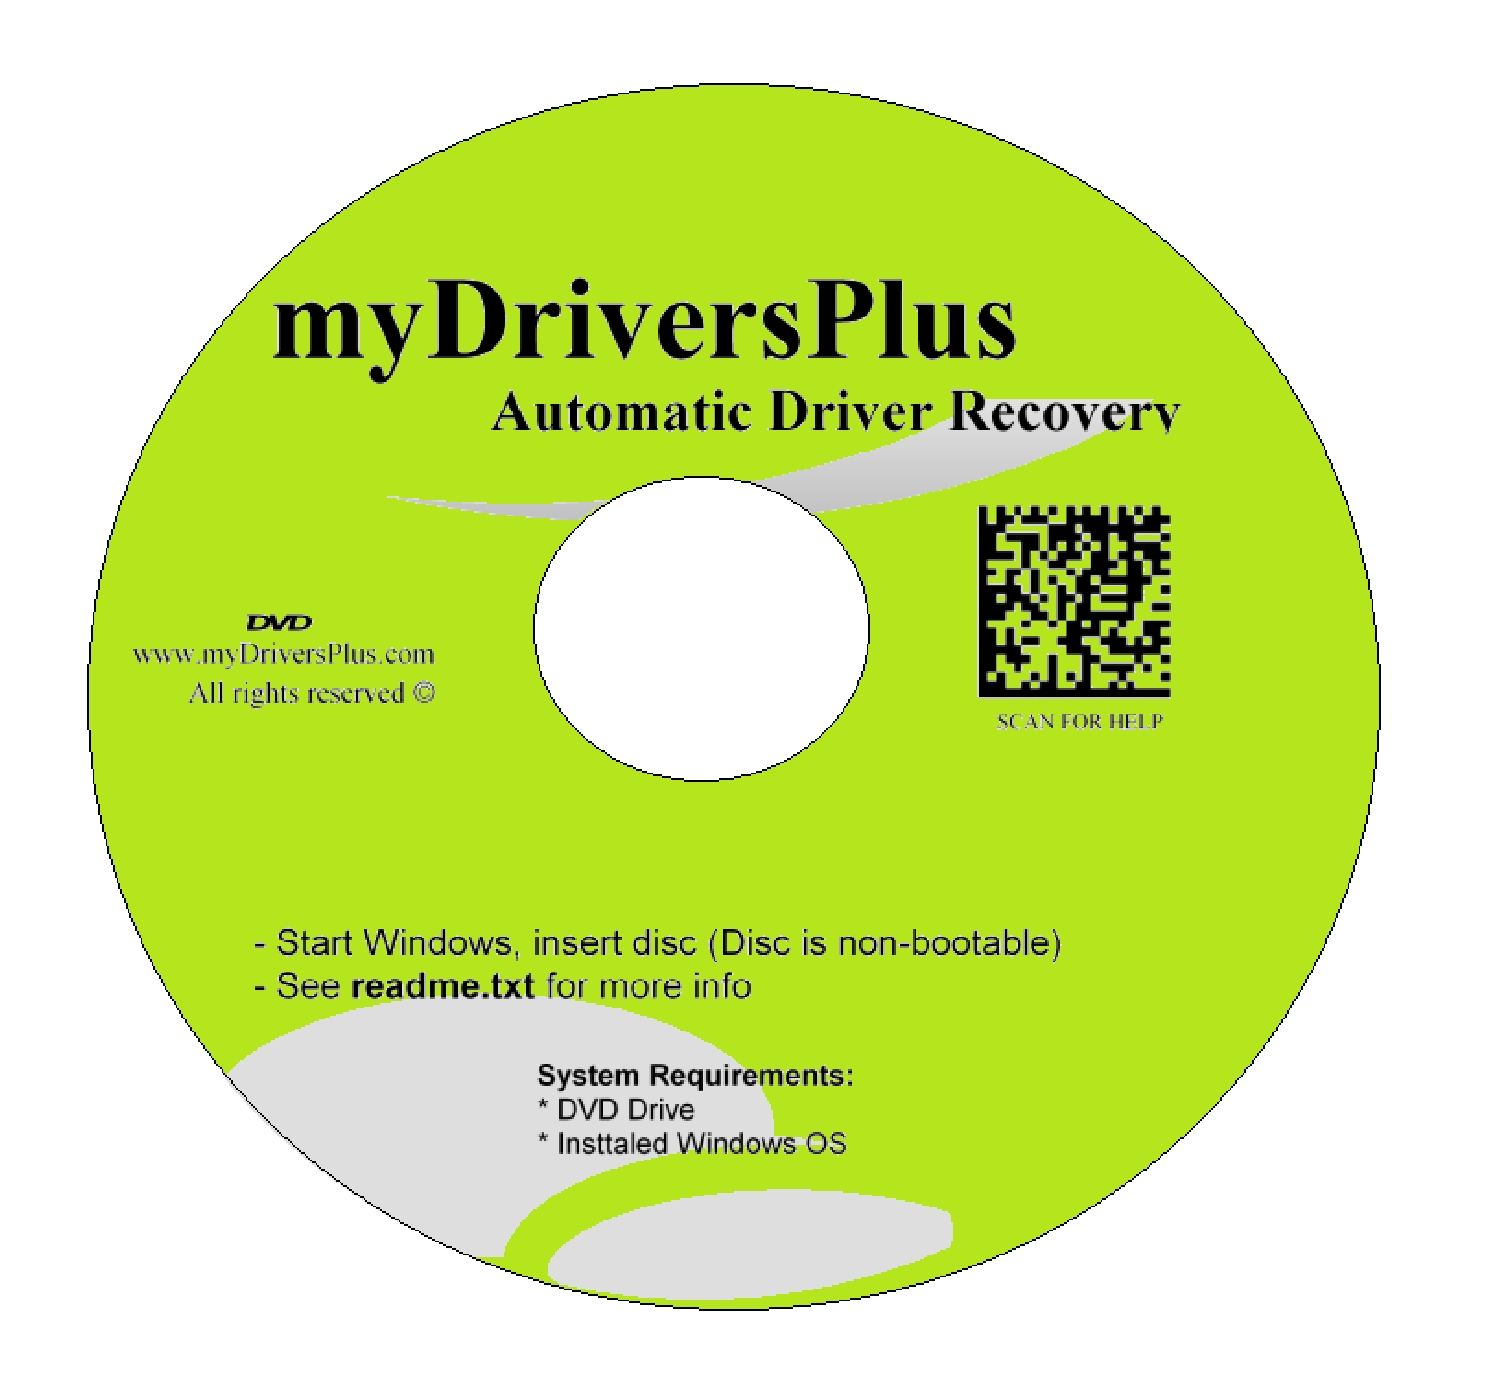 Compaq Presario V6102AU Drivers Recovery Restore Resource Utilities Software with Automatic One-Click Installer Unattended for Internet, Wi-Fi, Ethernet, Video, Sound, Audio, USB, Devices, Chipset ..